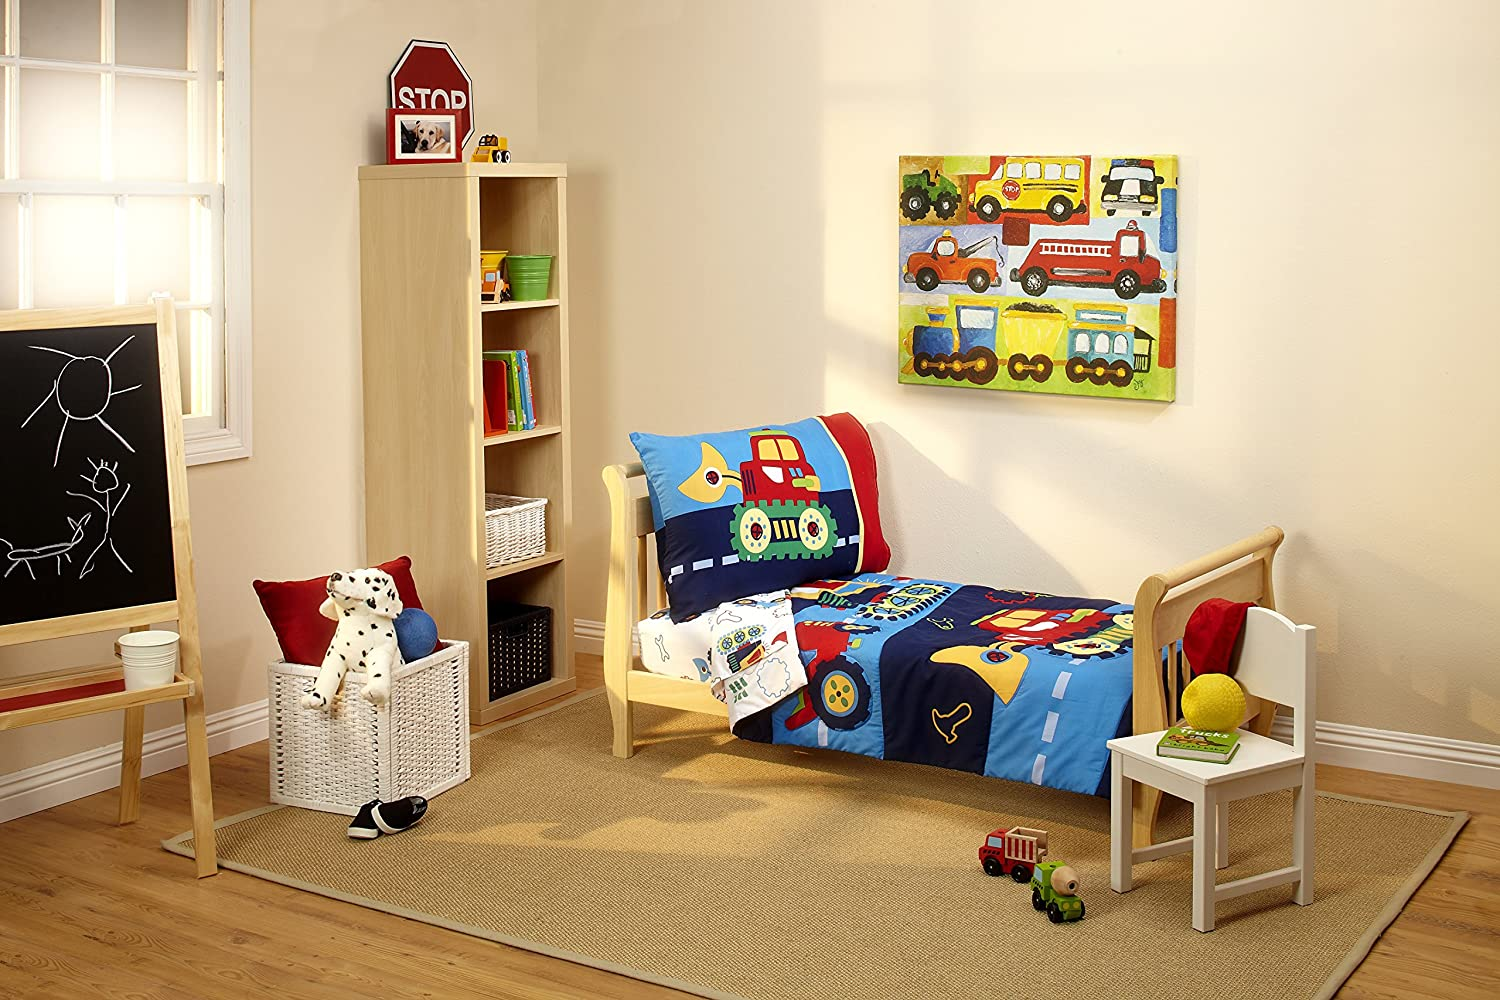 Bulldozers Dump Trucks Gears And Wrenches The Everything Kids Under Construction 4 Piece Toddler Bedding Set